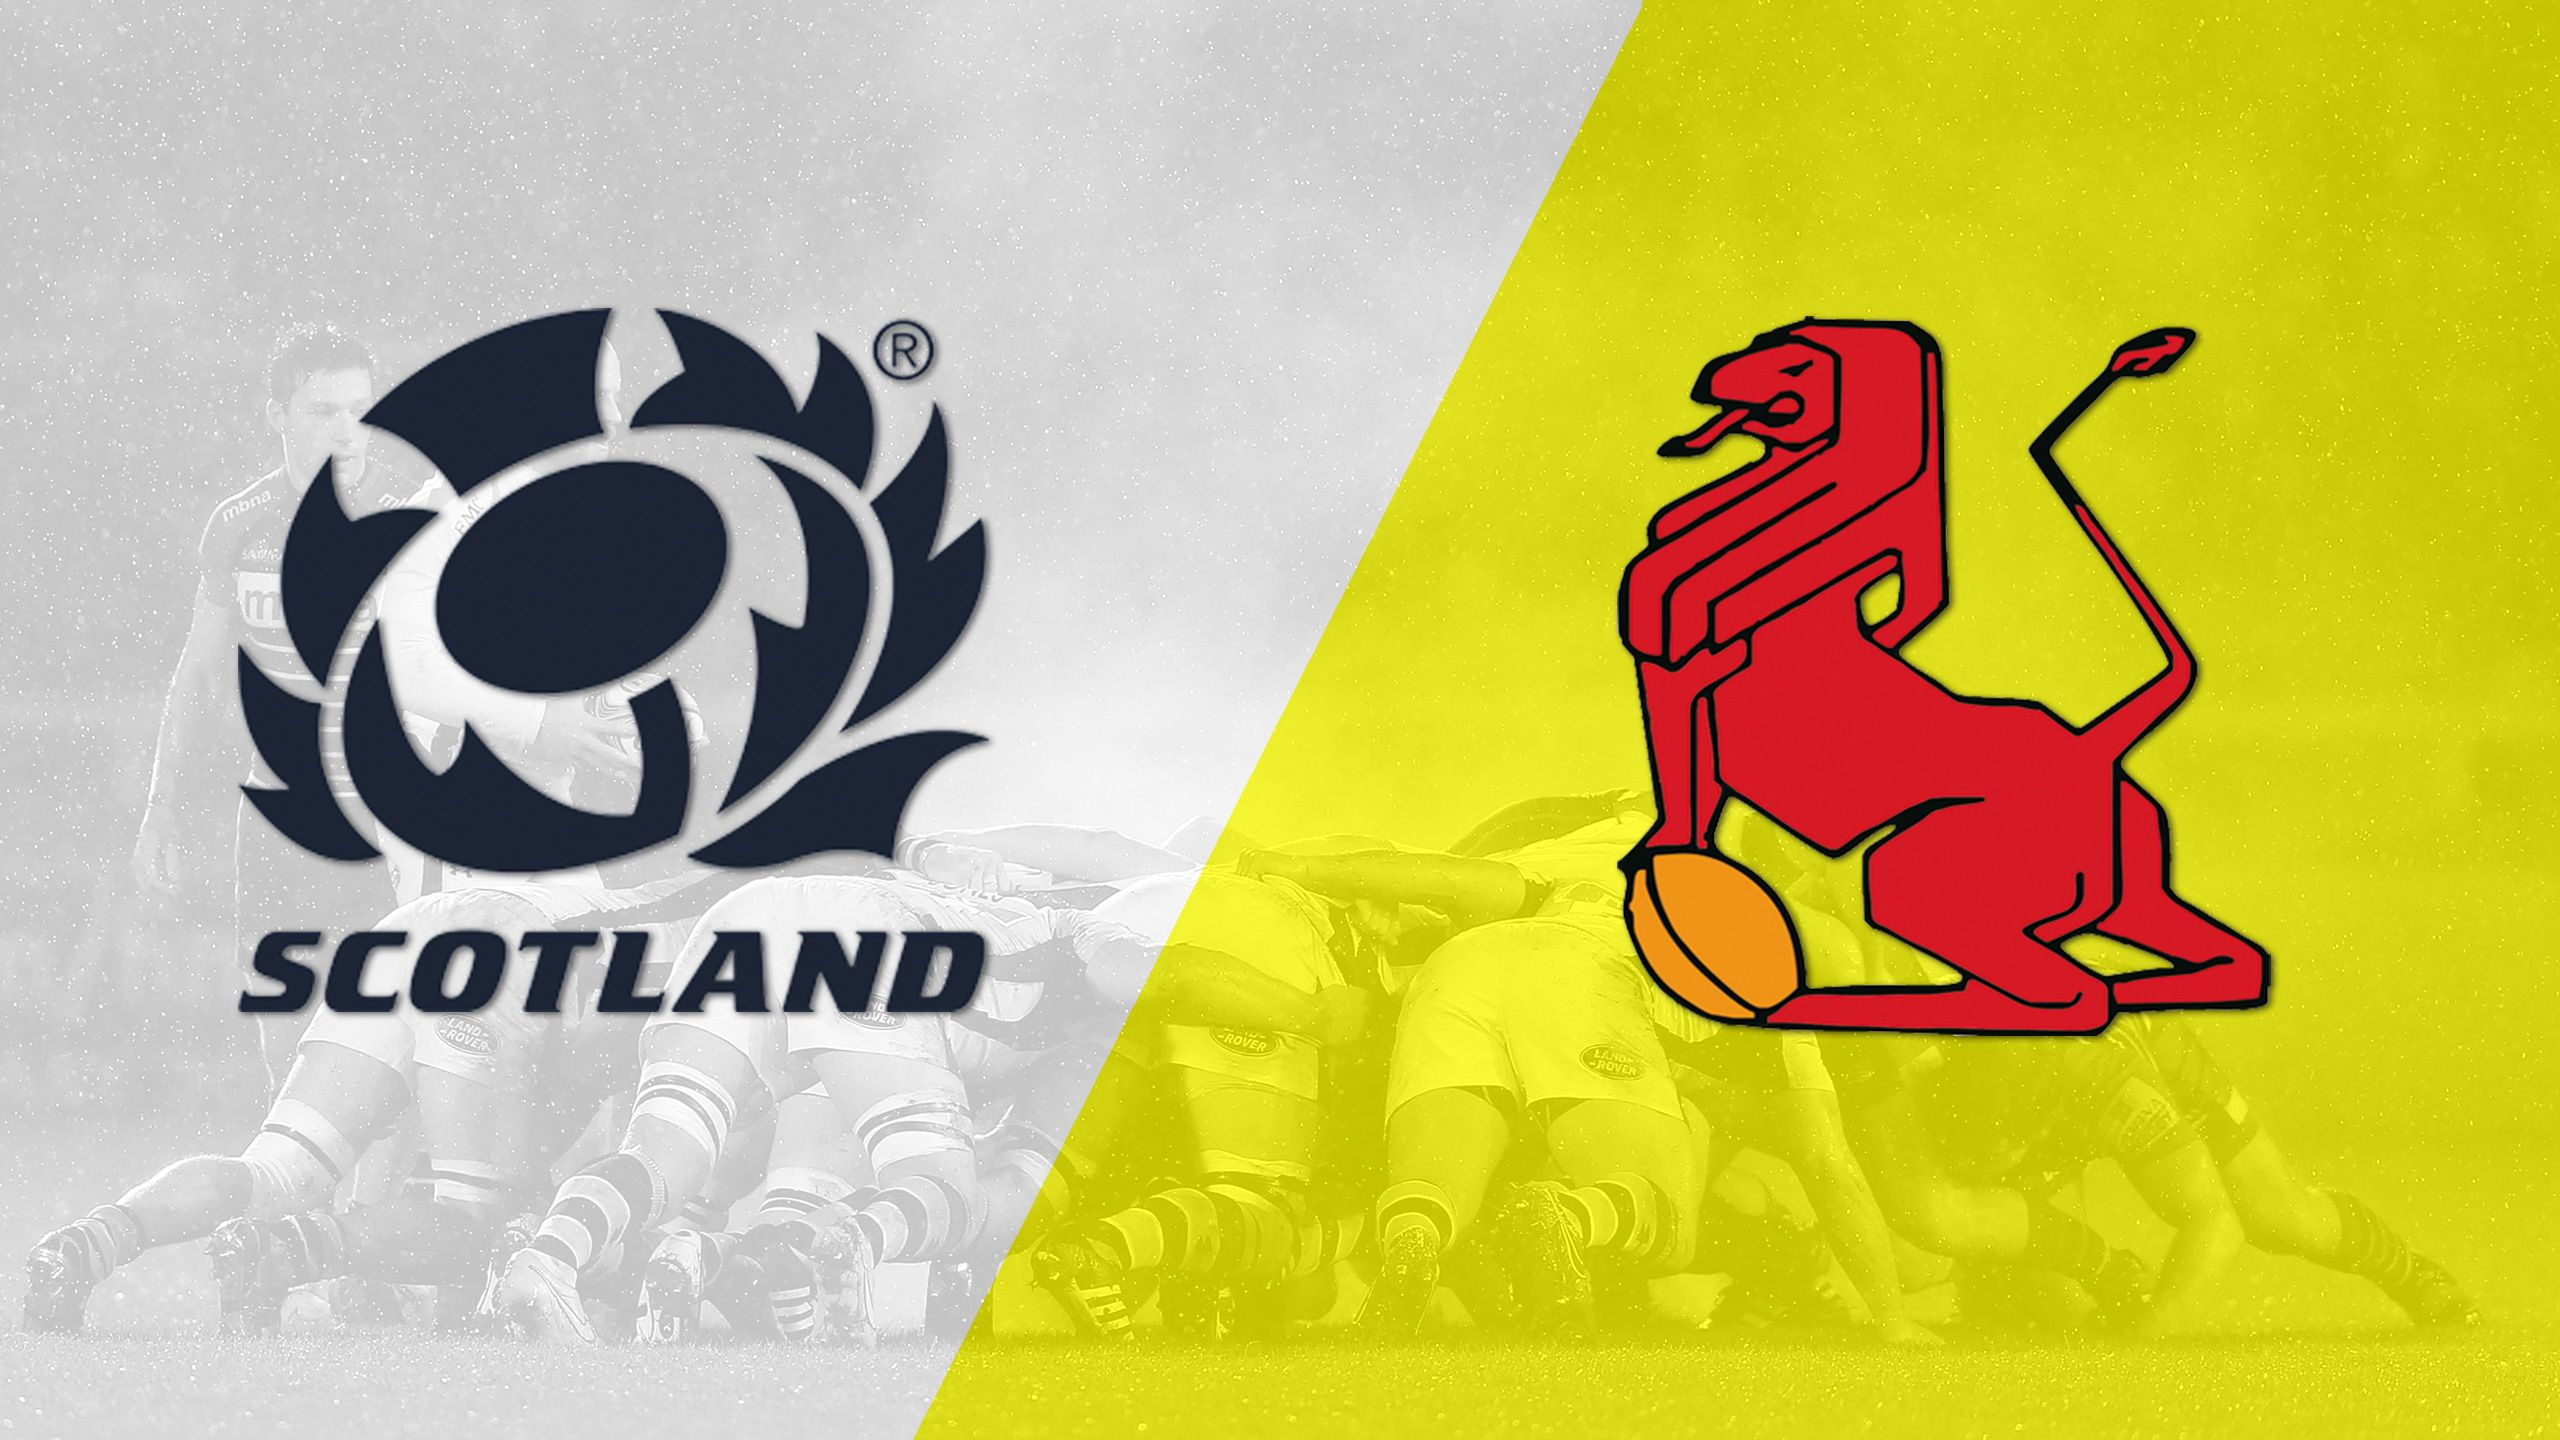 Scotland vs. Spain (Challenge Trophy Quarter Finals) (World Rugby Sevens Series)